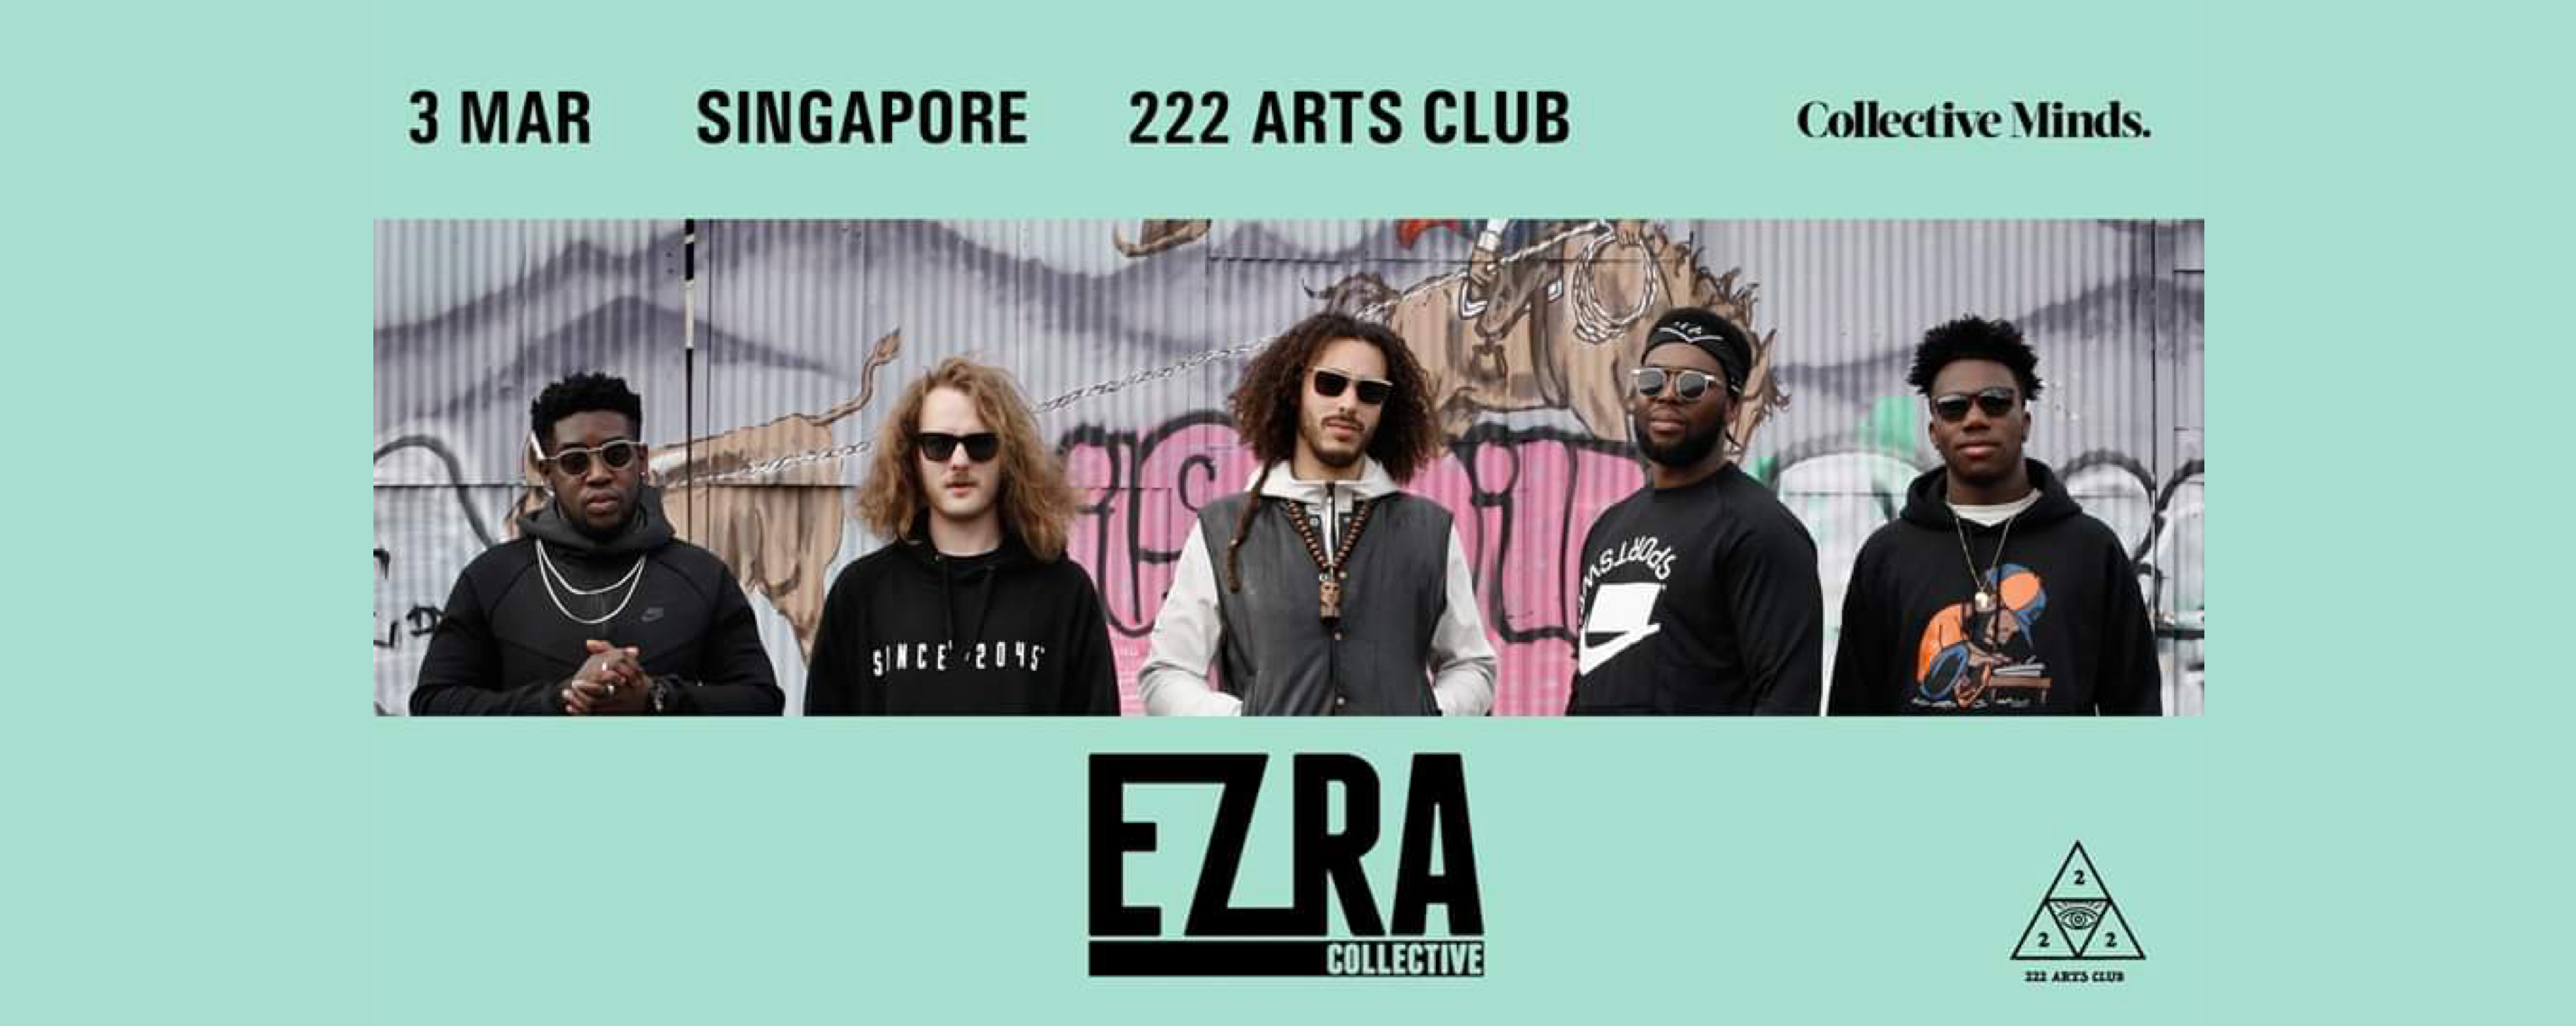 Ezra Collective (UK) presented by Collective Minds